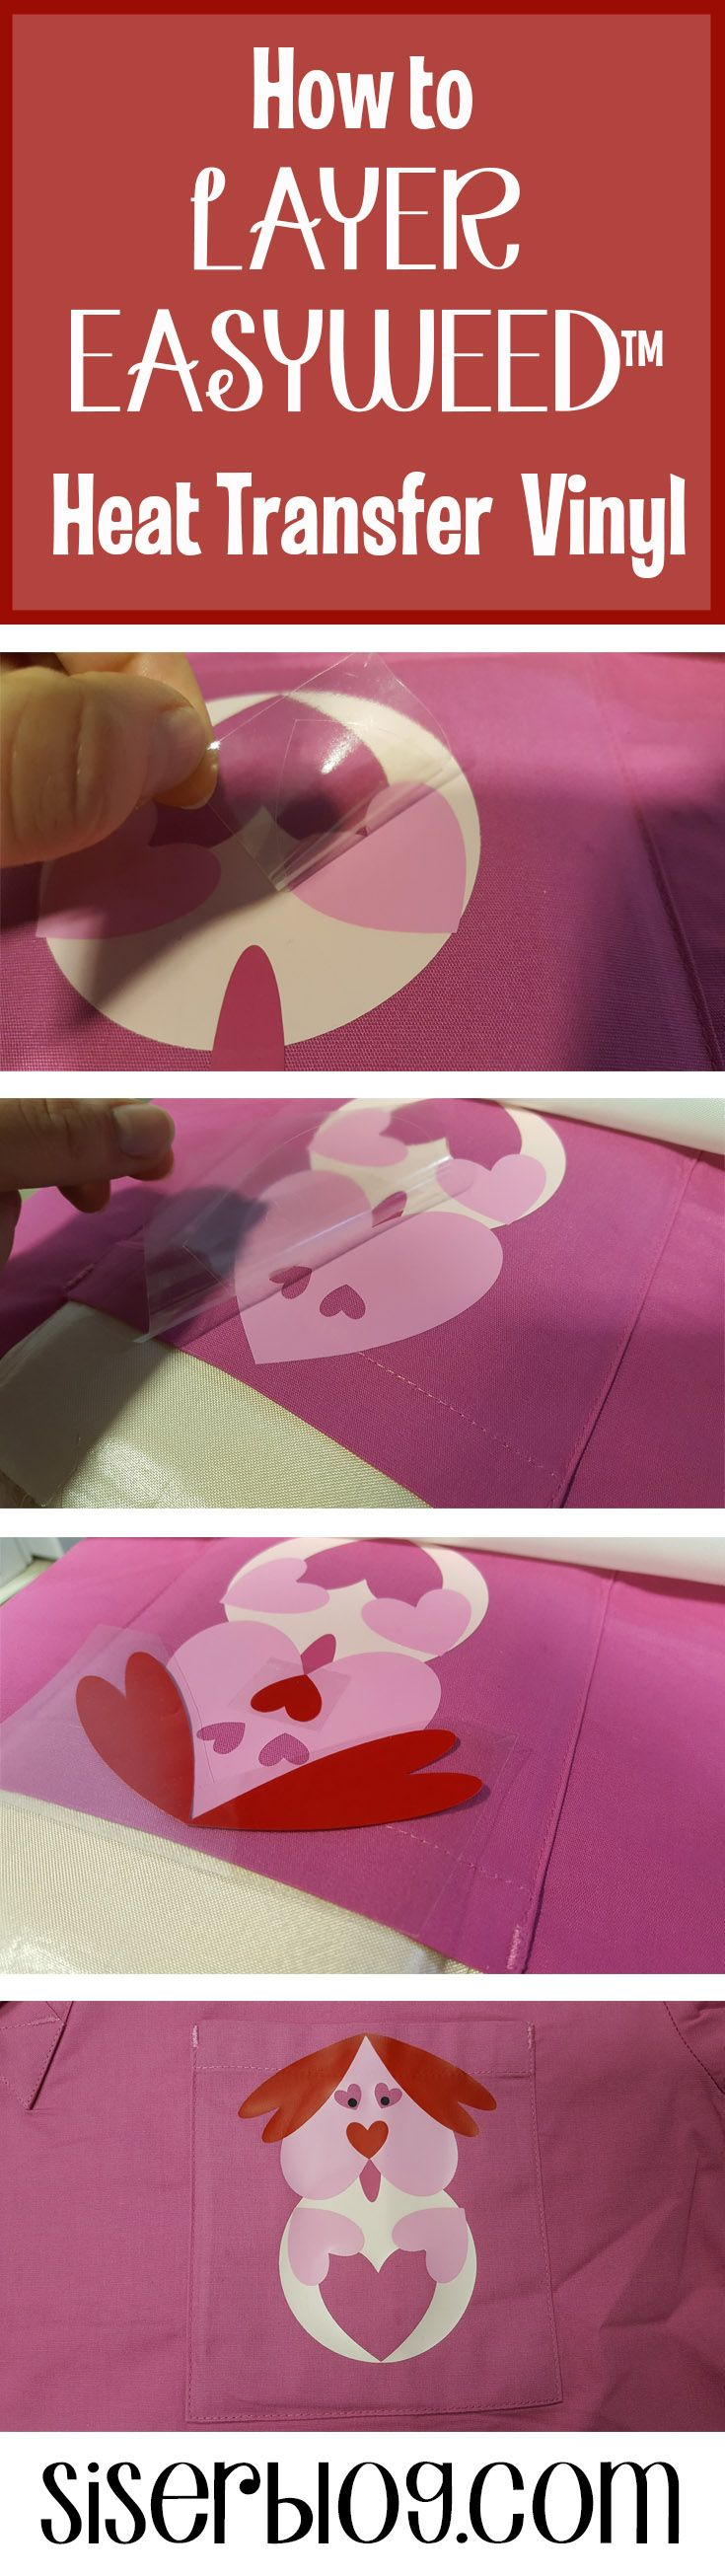 Tips for layering Siser EasyWeed™ HTV plus a free cricut design space file and how to customize scrubs.